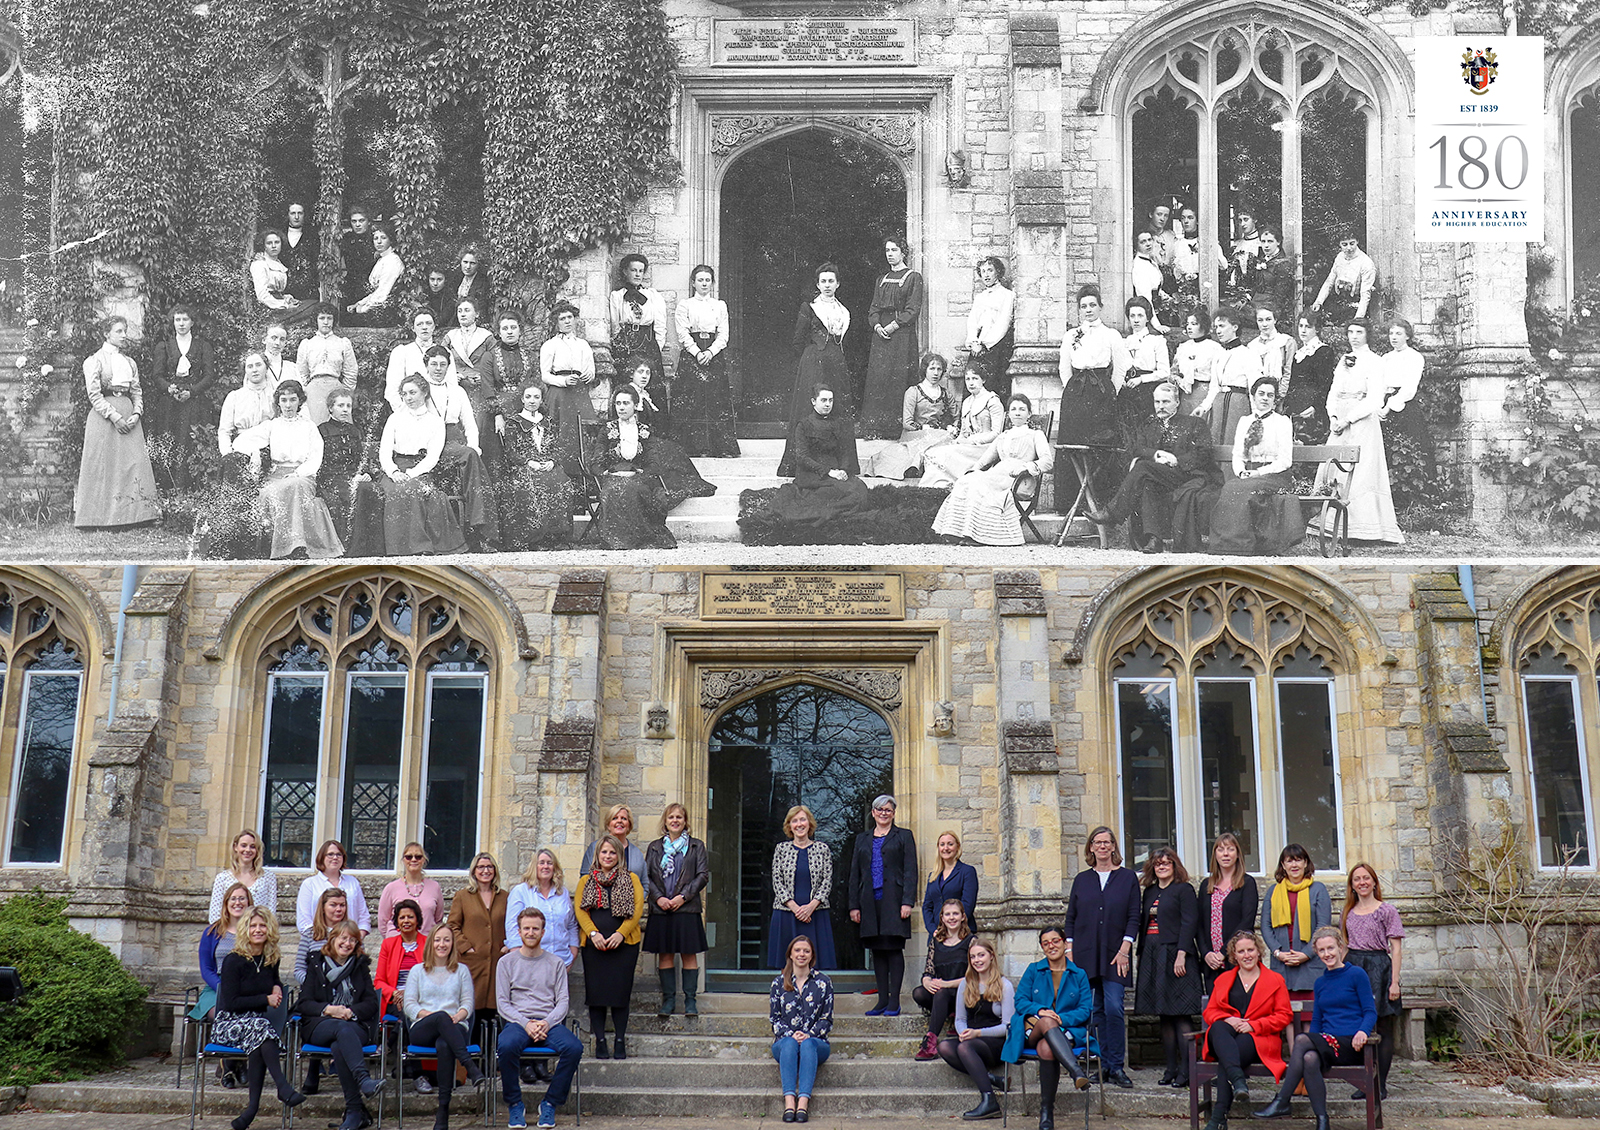 A photo outside Cloisters from 1839 recreated in 2019